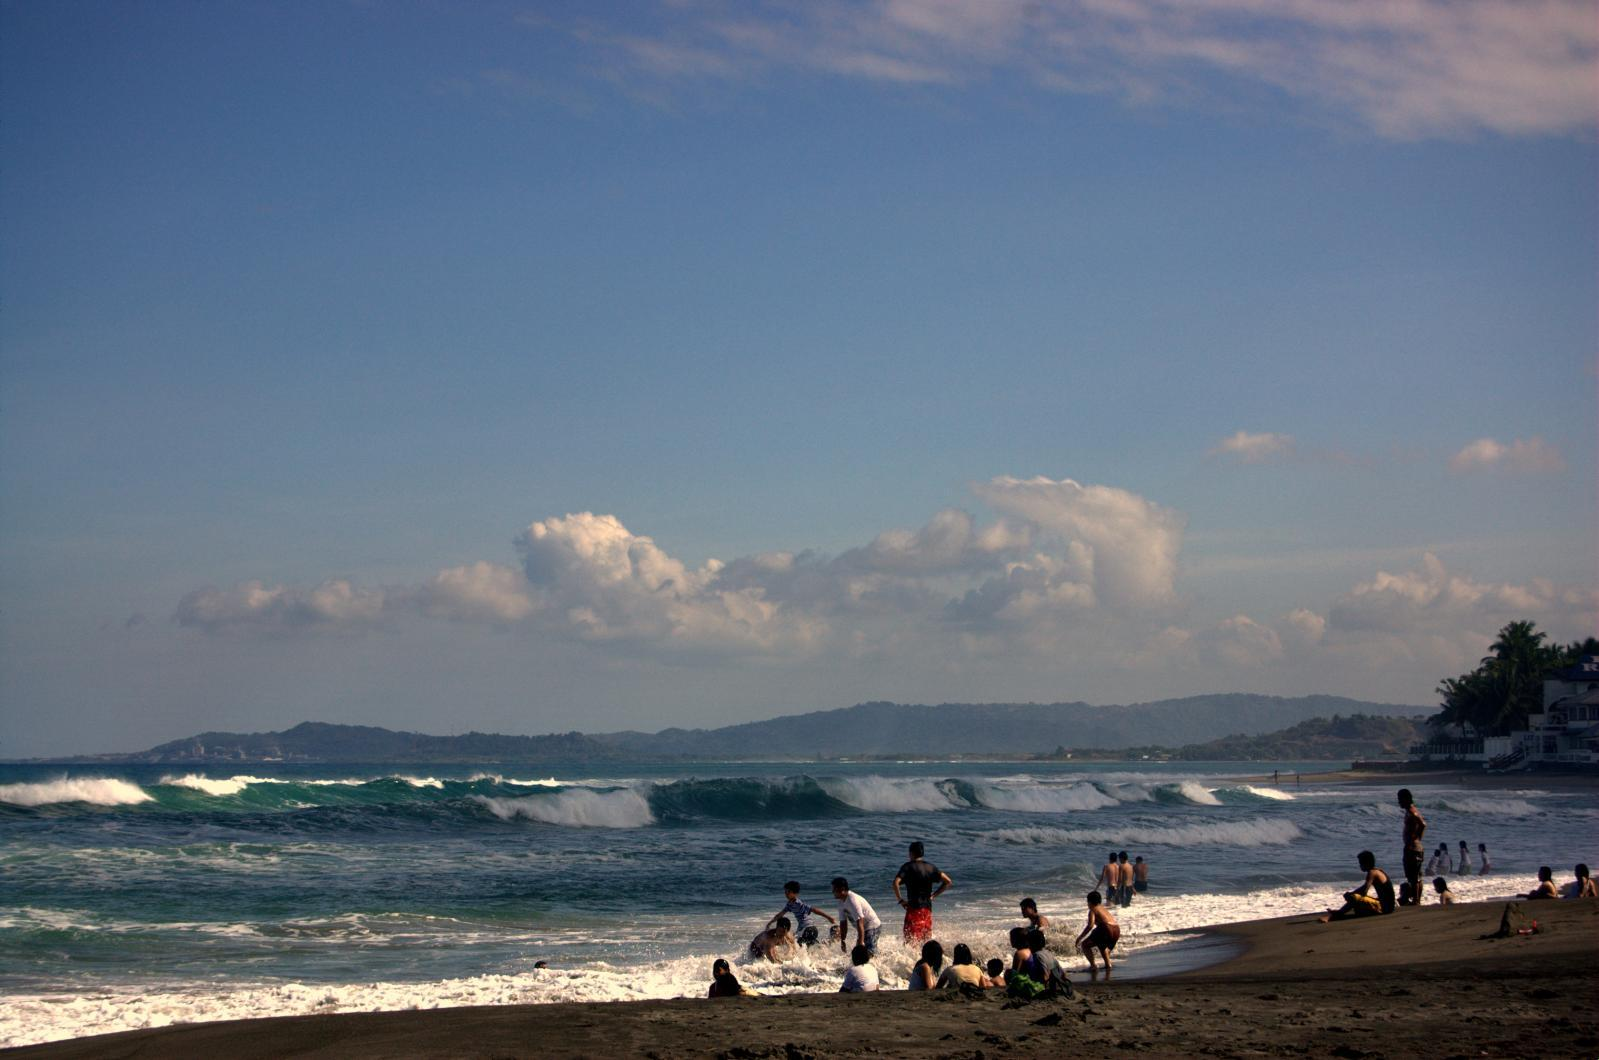 La Union: The Surfing Capital of the North